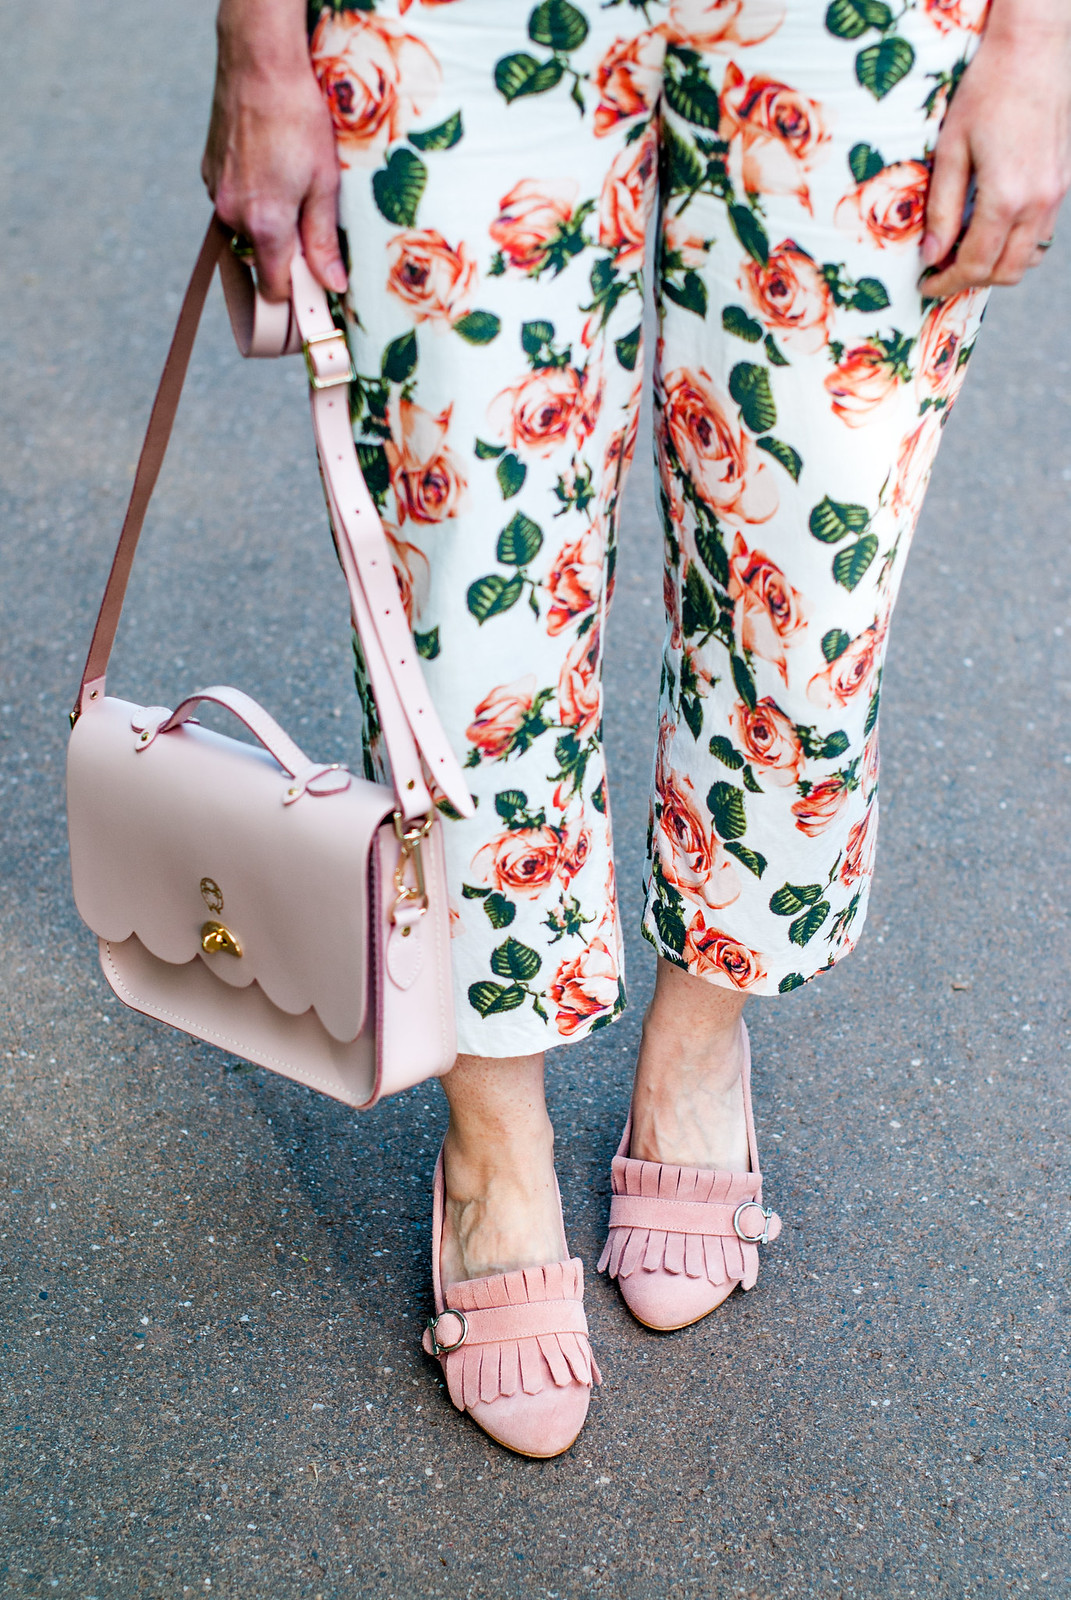 Blush pink summer outfit: Pink sweater with heart motif cropped floral trousers pants blush pink suede Gucci-style heeled loafers pink satchel | Not Dressed As Lamb, over 40 style